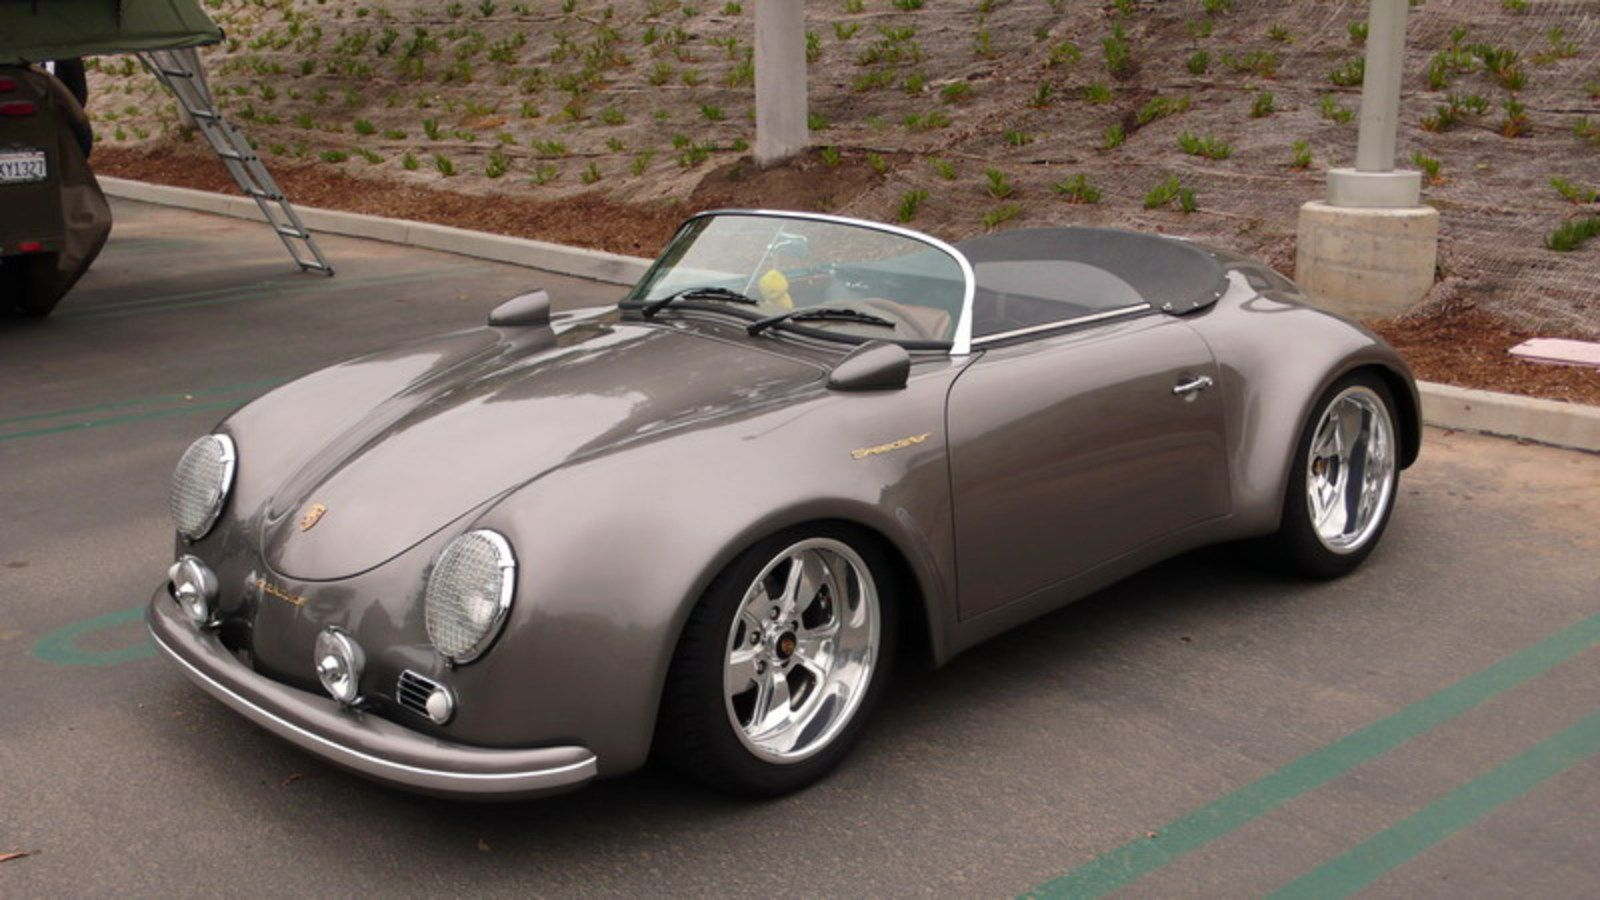 1957 Porsche Speedster Hot Rod Porsche Tuning Porsche